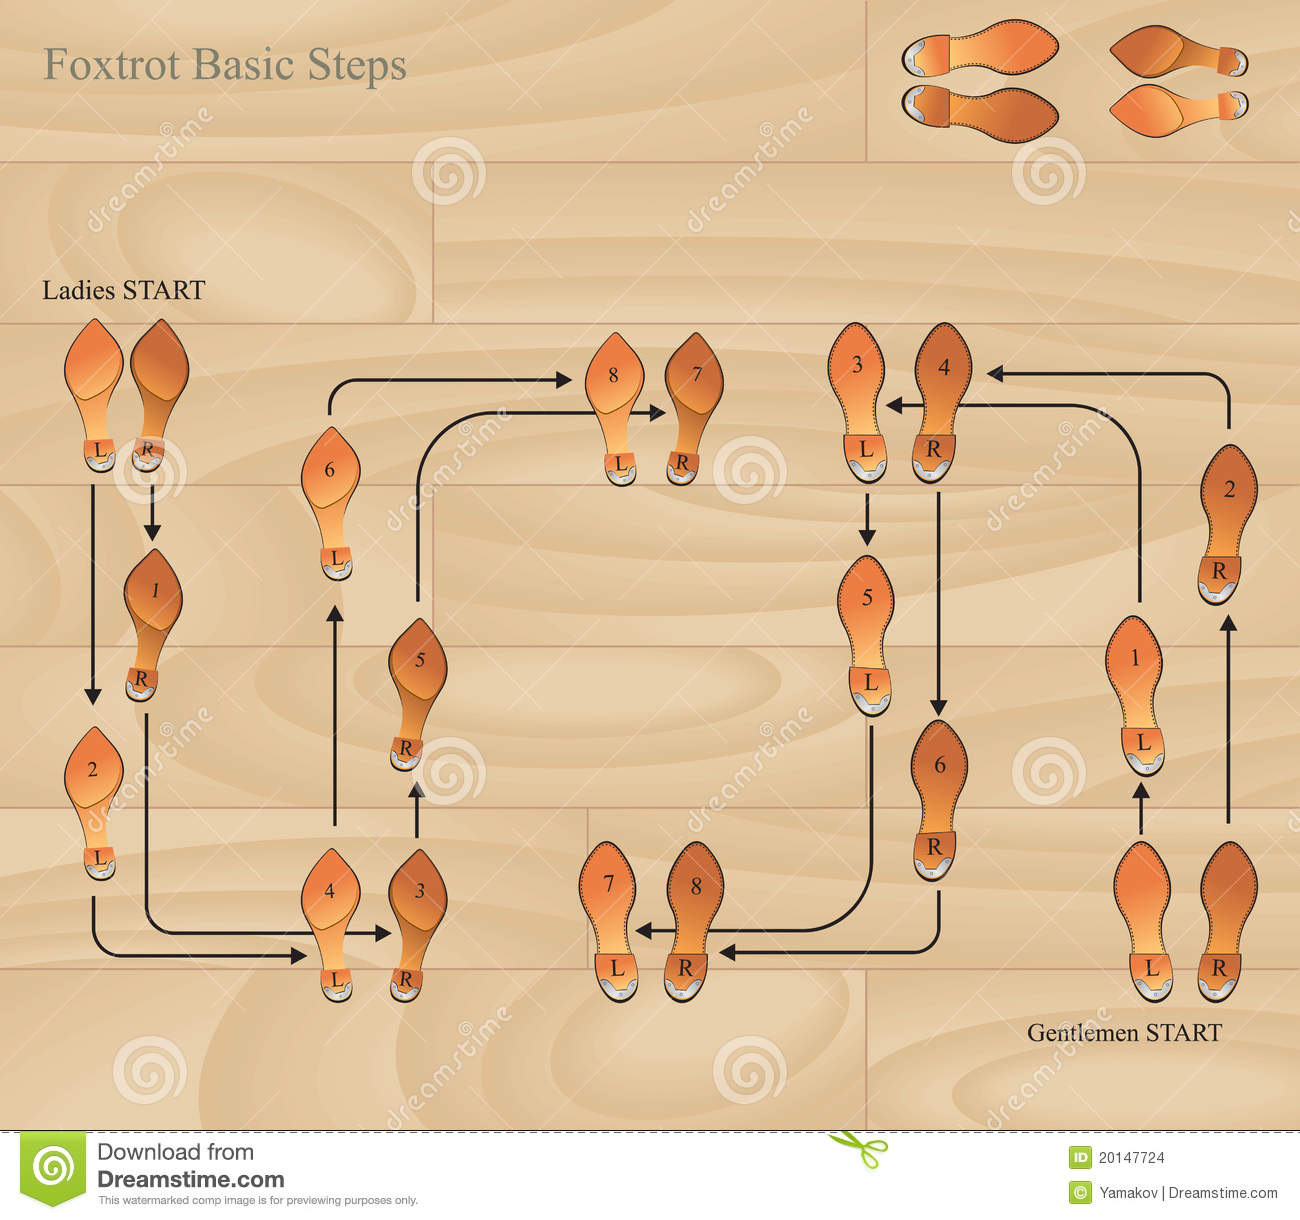 Foxtrot Basic Steps on Foxtrot Steps For Beginners